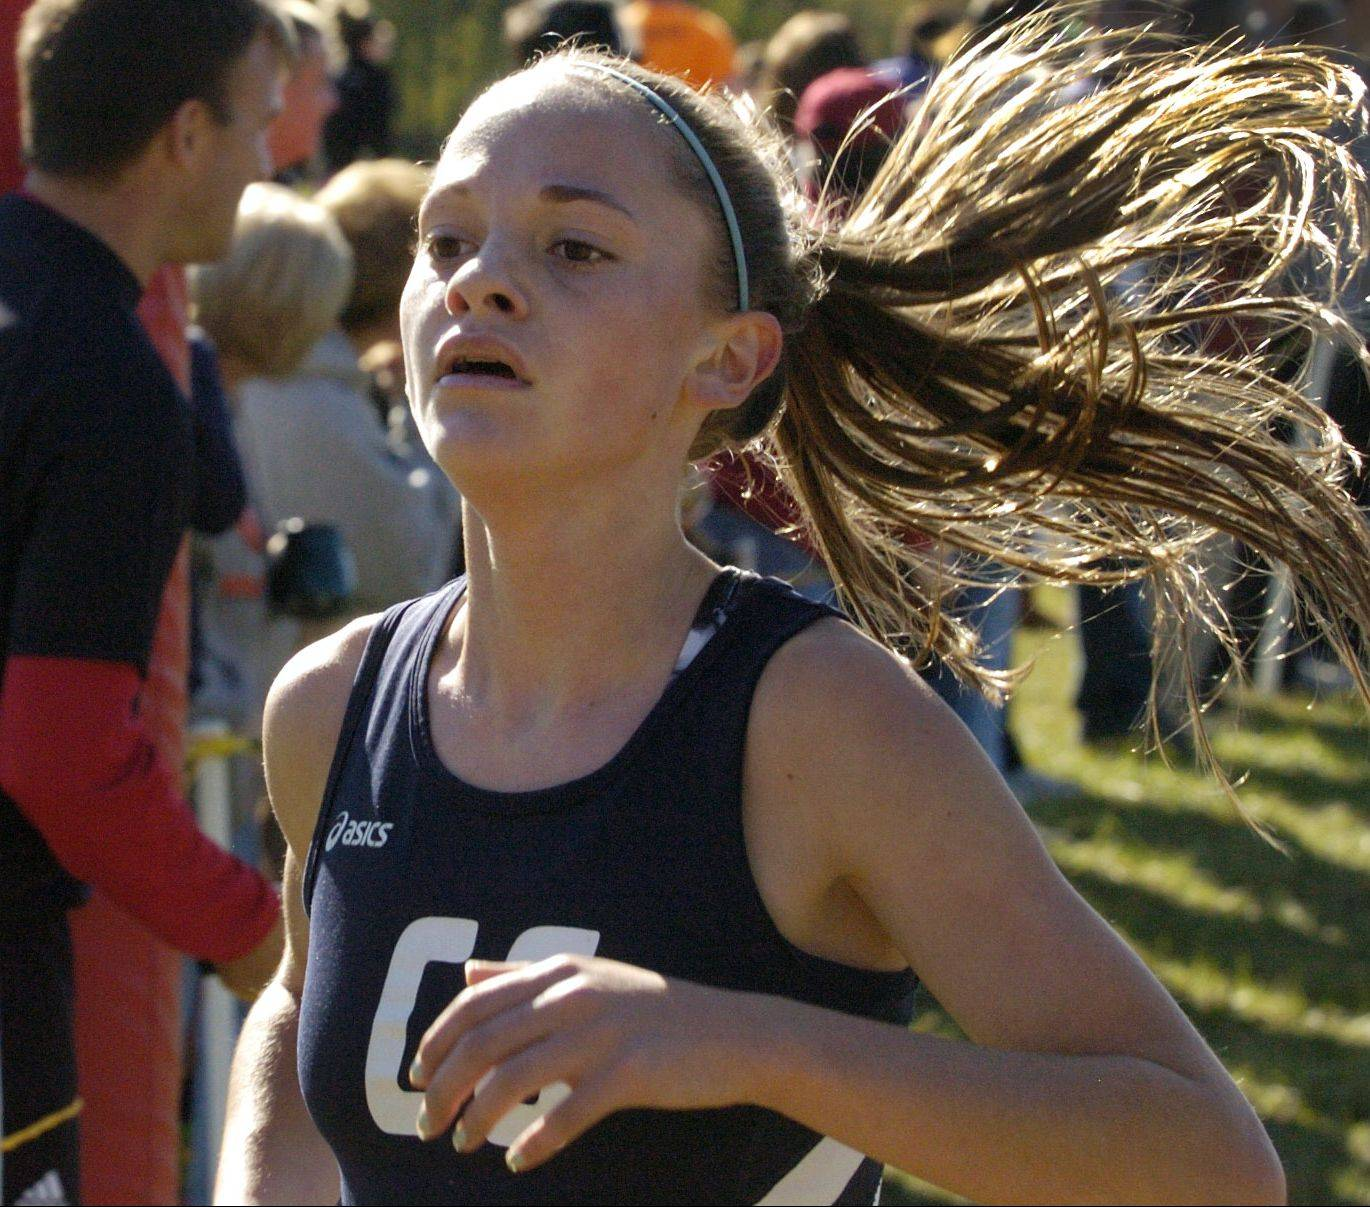 Cary-Grove junior Talia Duzey earned all-state honors last season, finishing 25th at the state girls cross country meet.